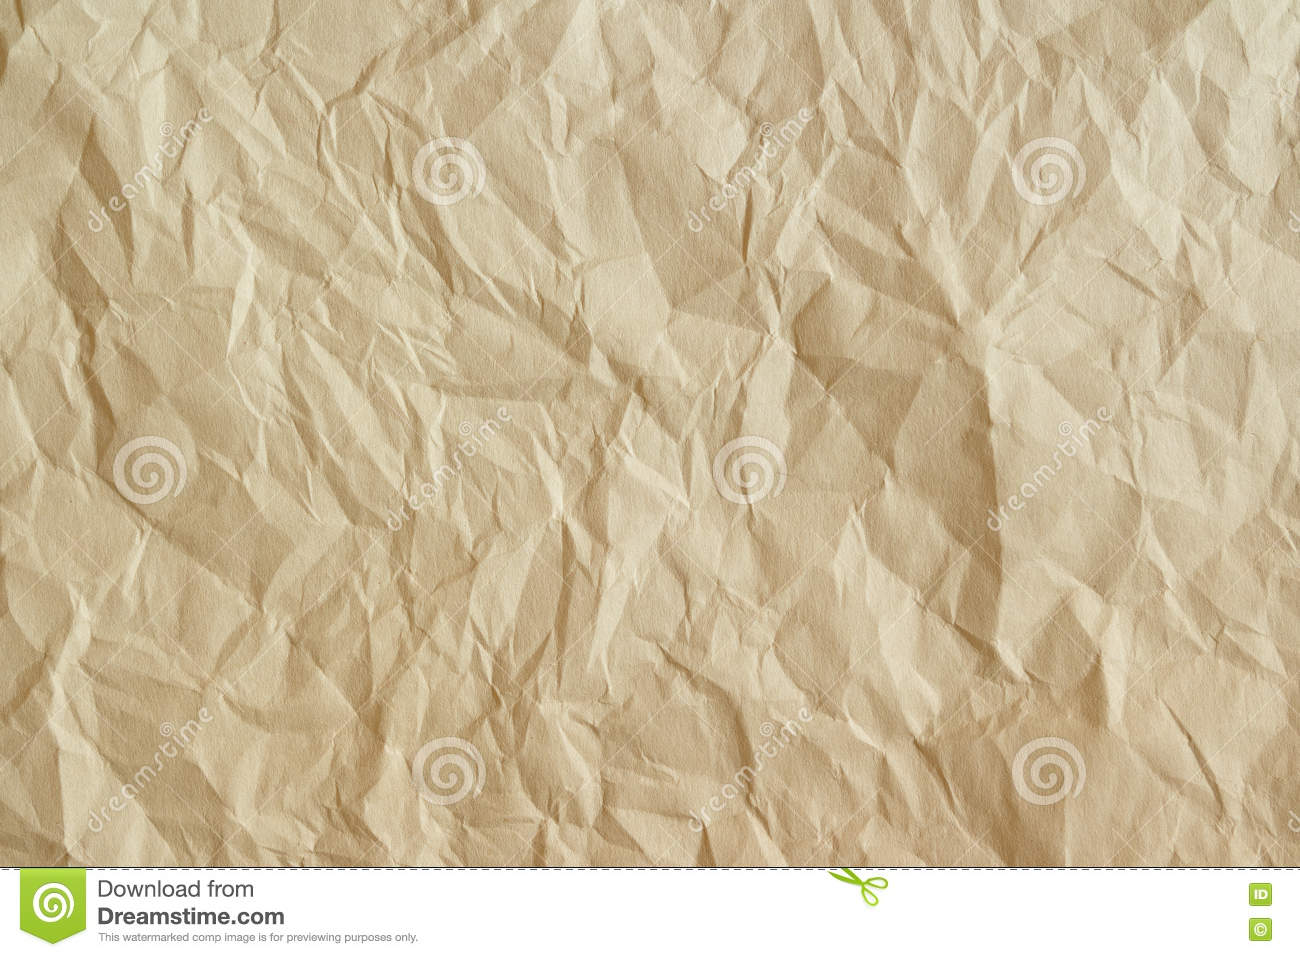 Old crumpled parchment texture.